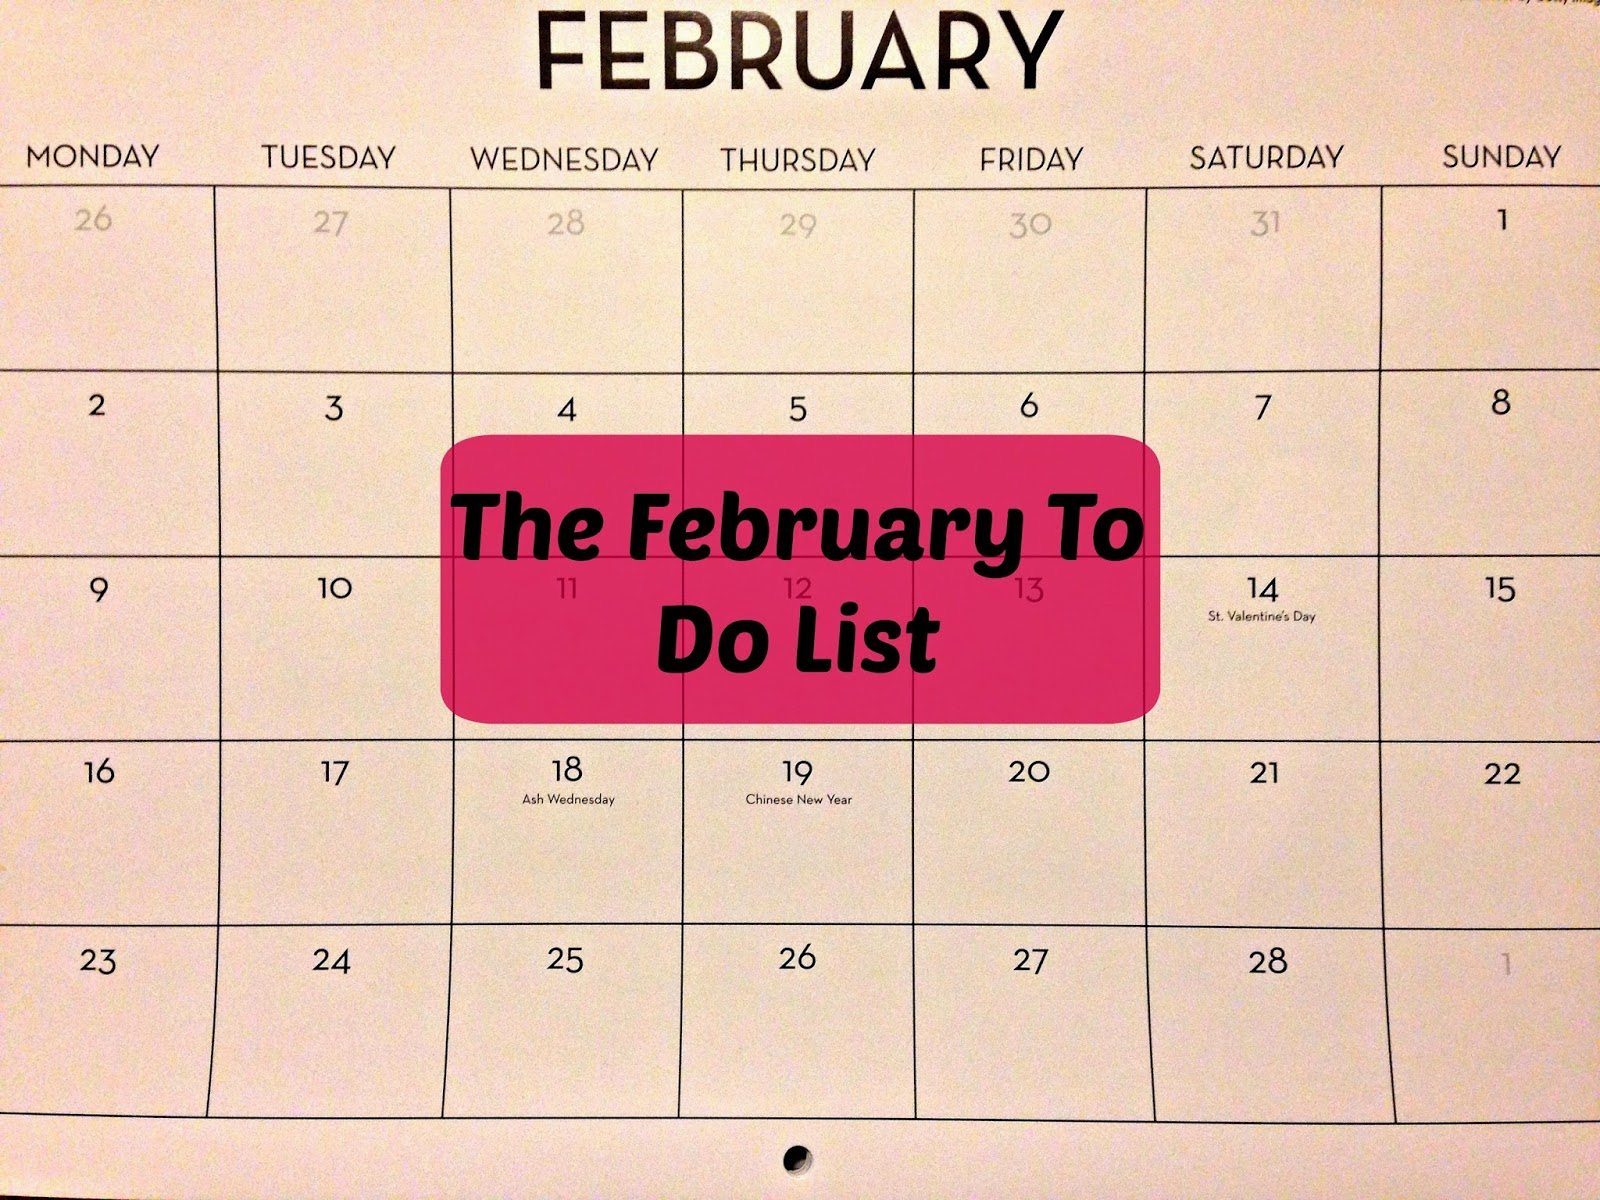 The February To Do List